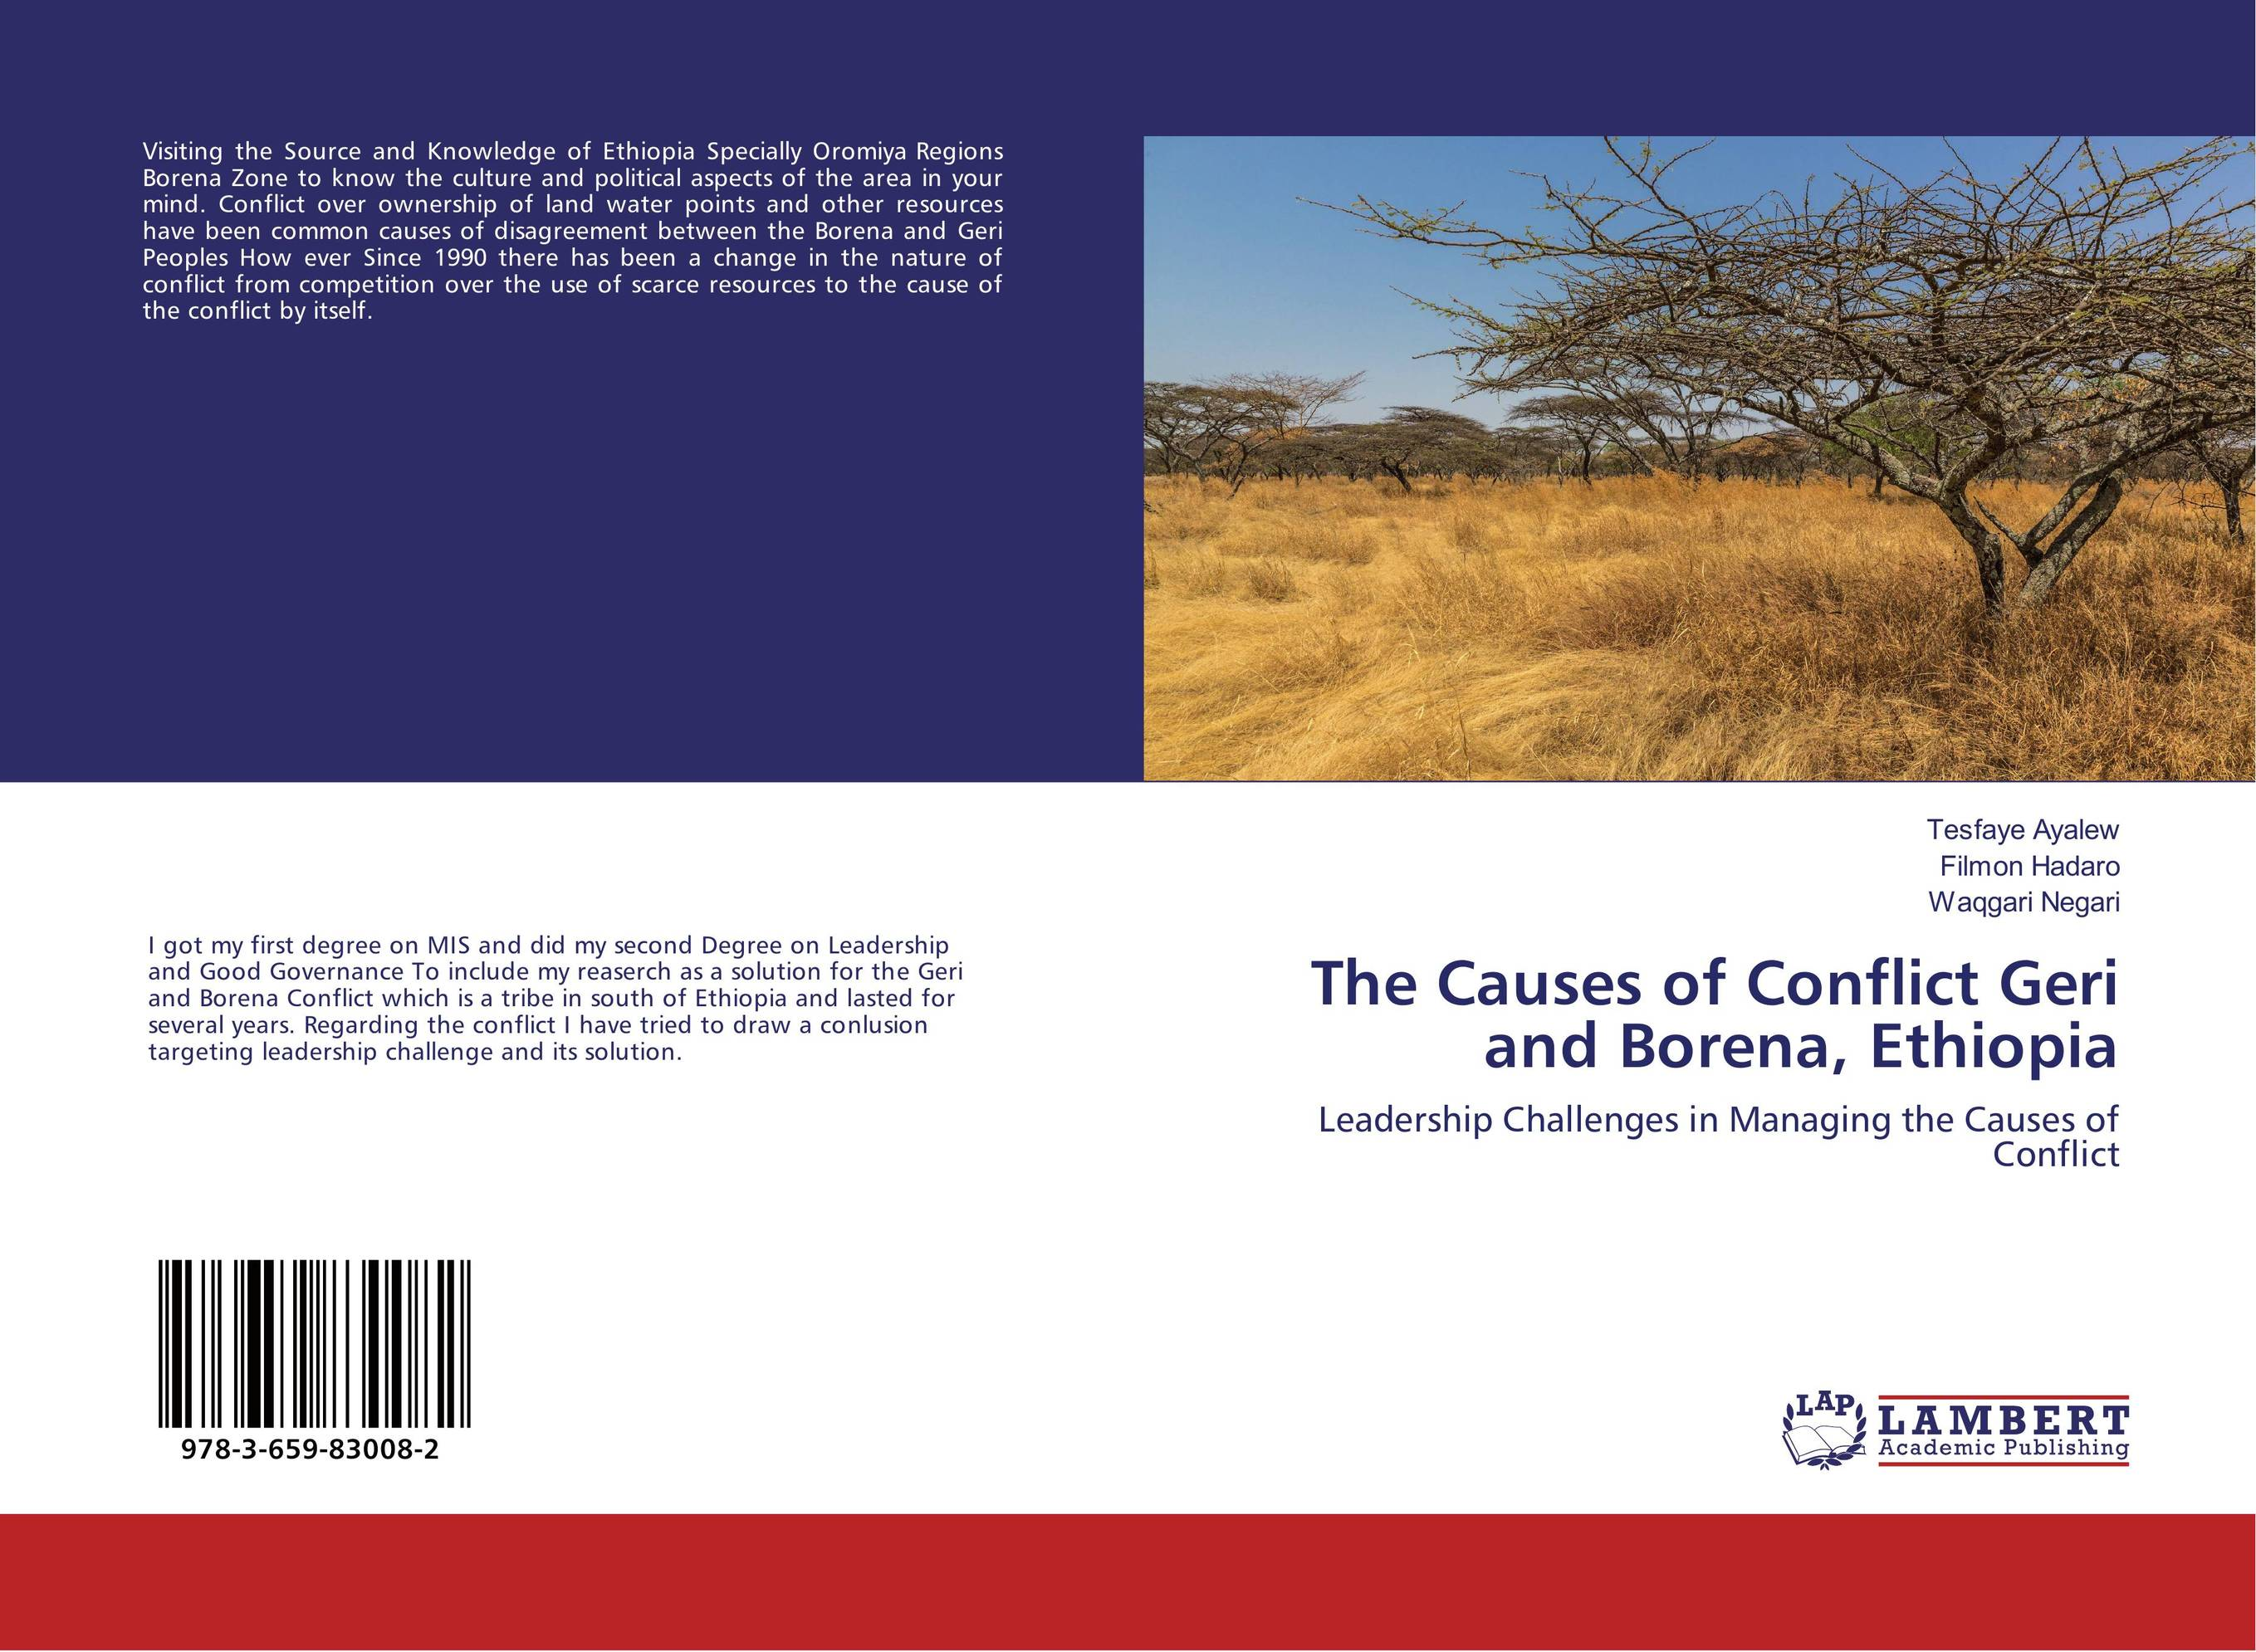 The Causes of Conflict Geri and Borena, Ethiopia land degradation in the oromiya highlands in ethiopia